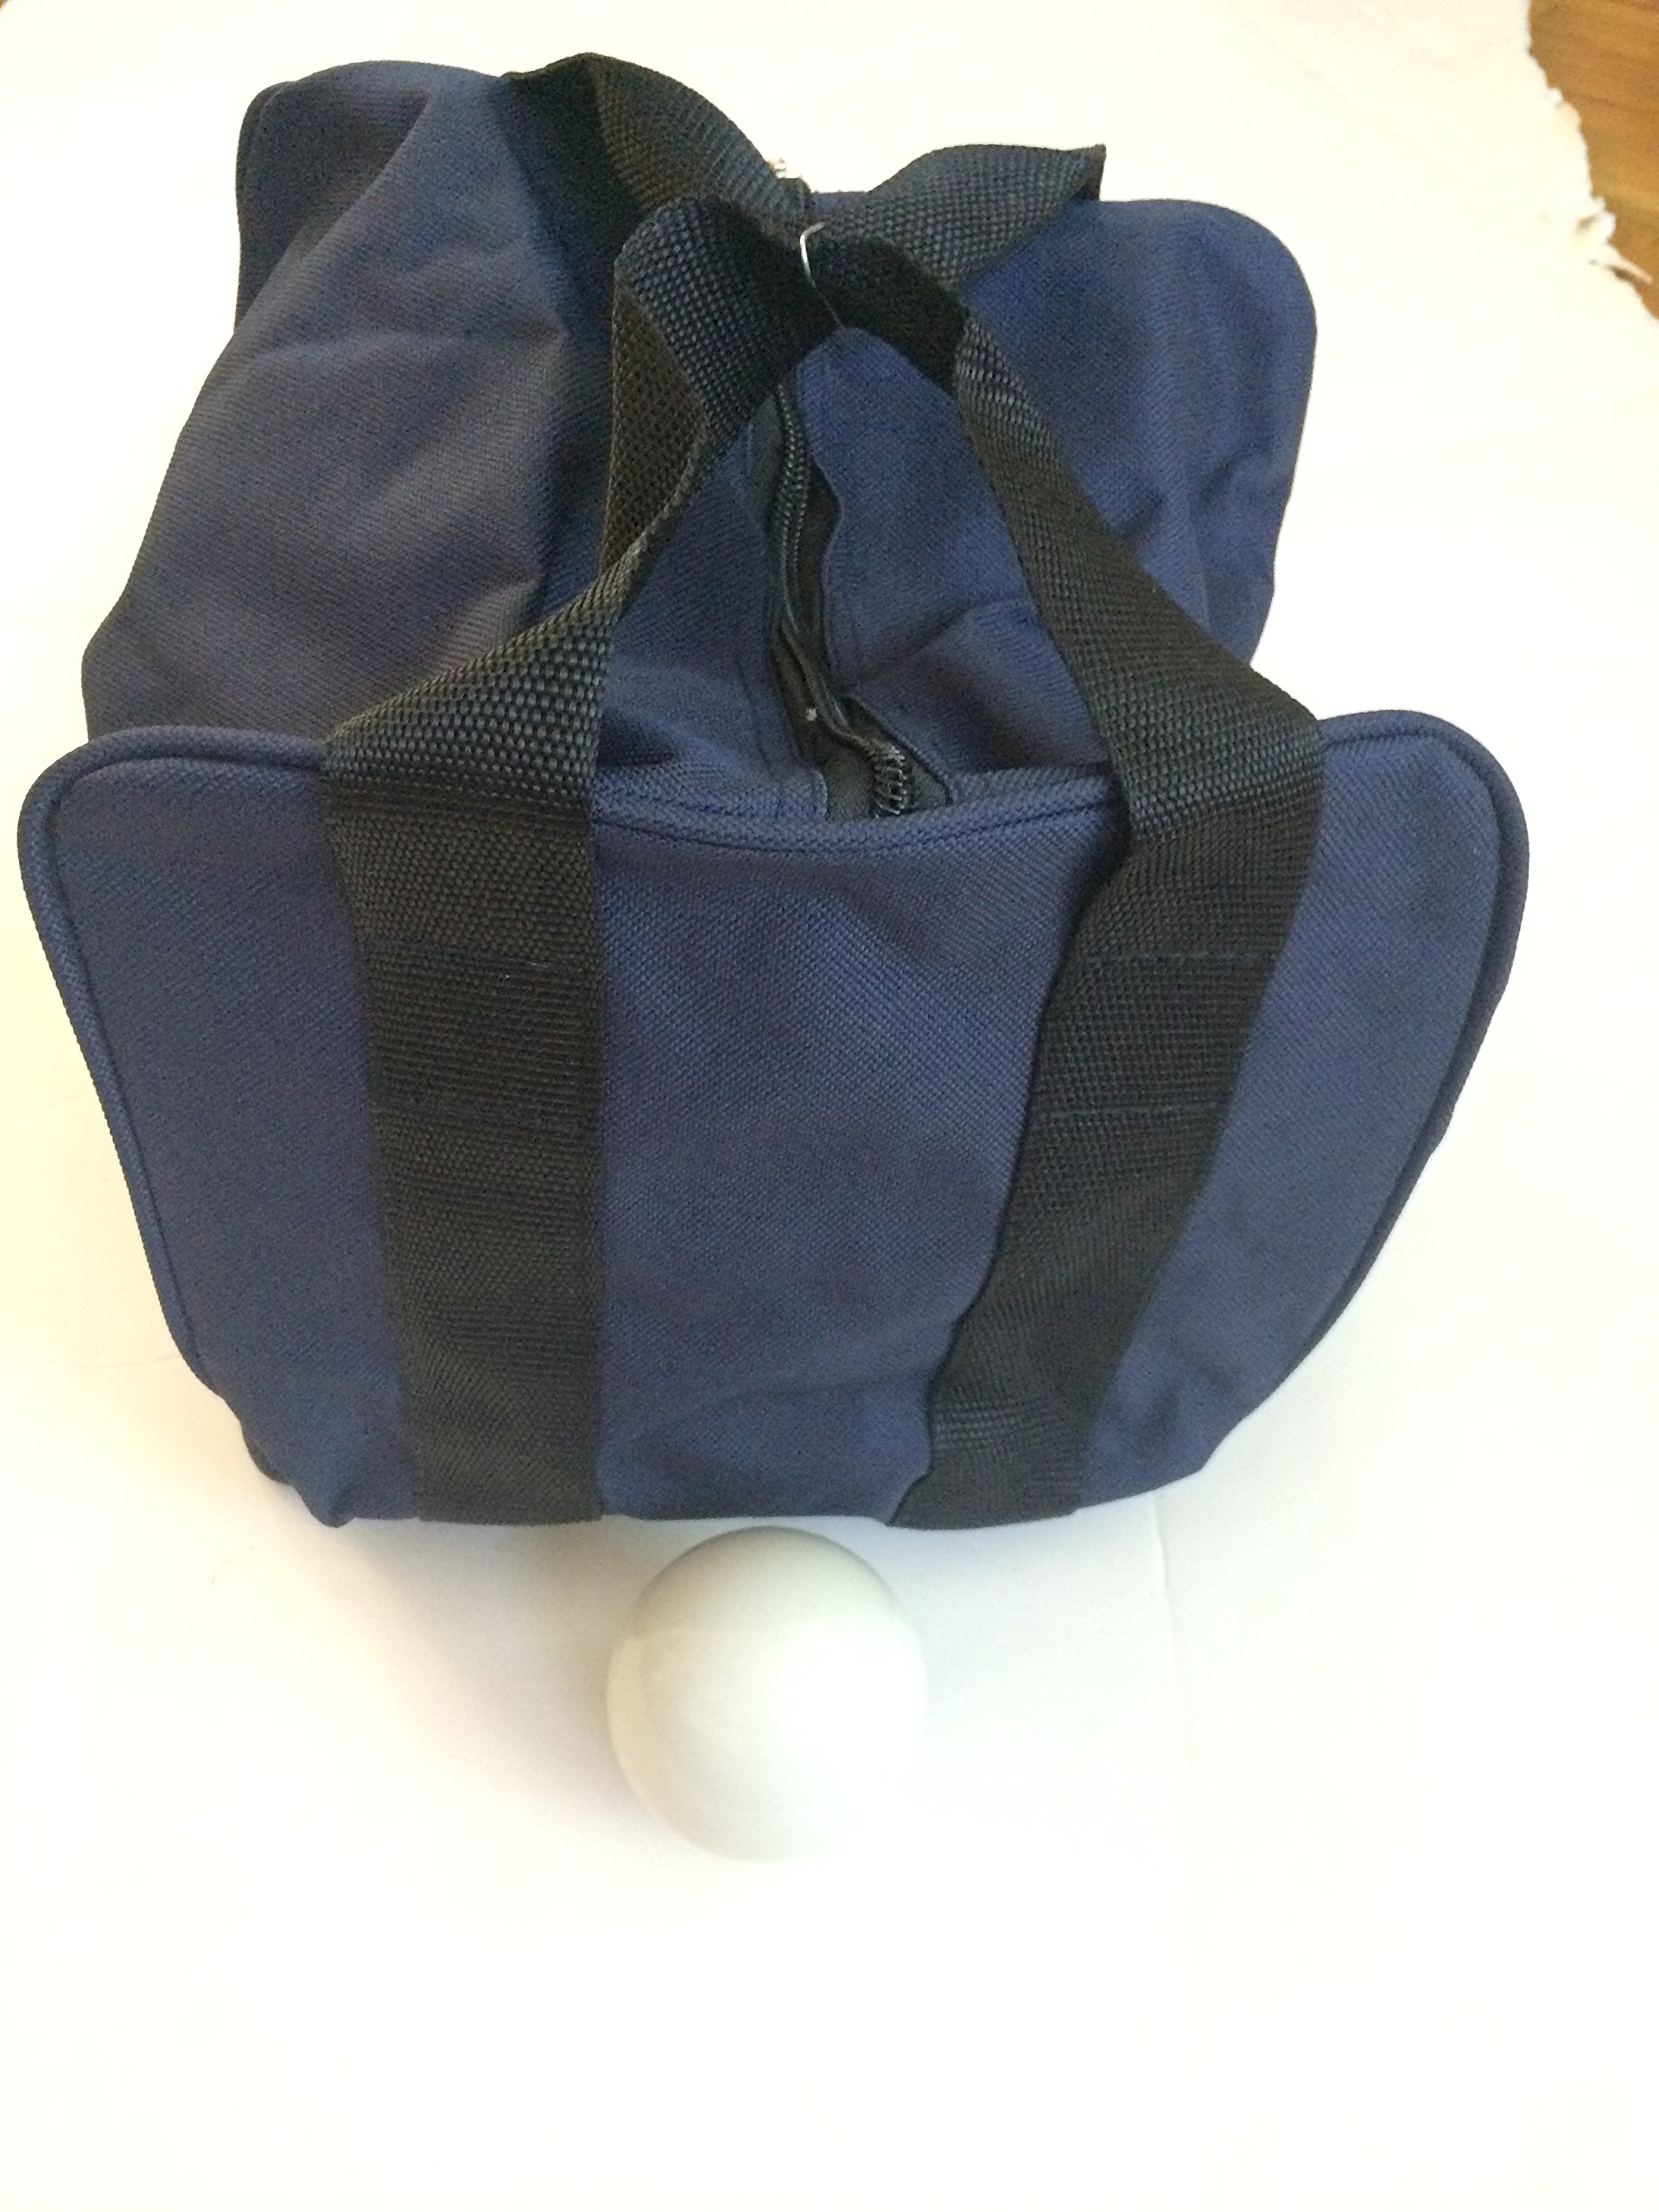 Unique Bocce Accessories Package - Extra Heavy Duty Nylon Bocce Bag (Blue with Black Handles) and White pallina by BuyBocceBalls